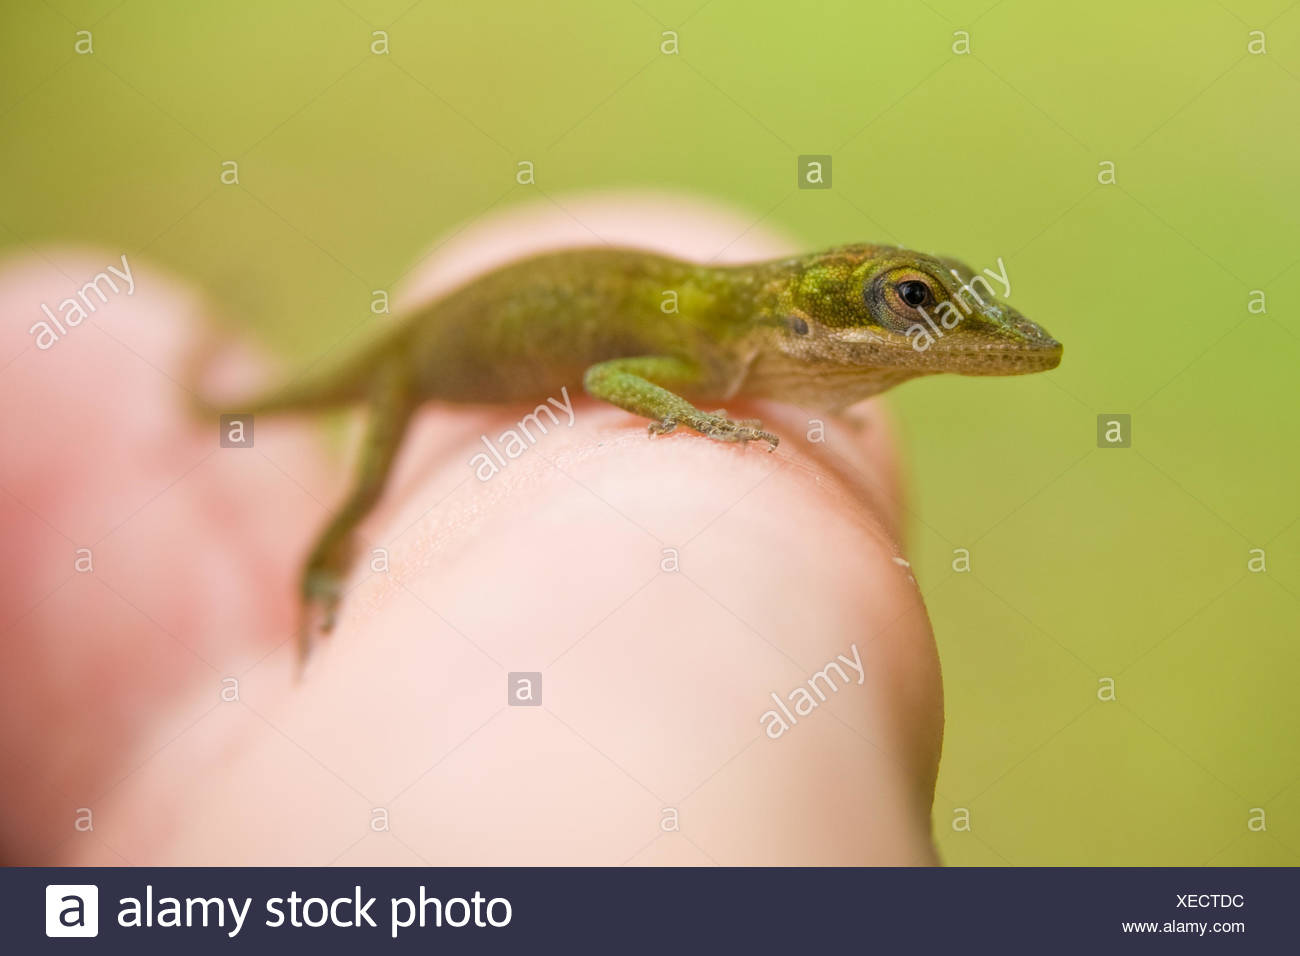 Northern Mariana Islands, Rota Municipality, Rota, Baby Gecko on hand - Stock Image